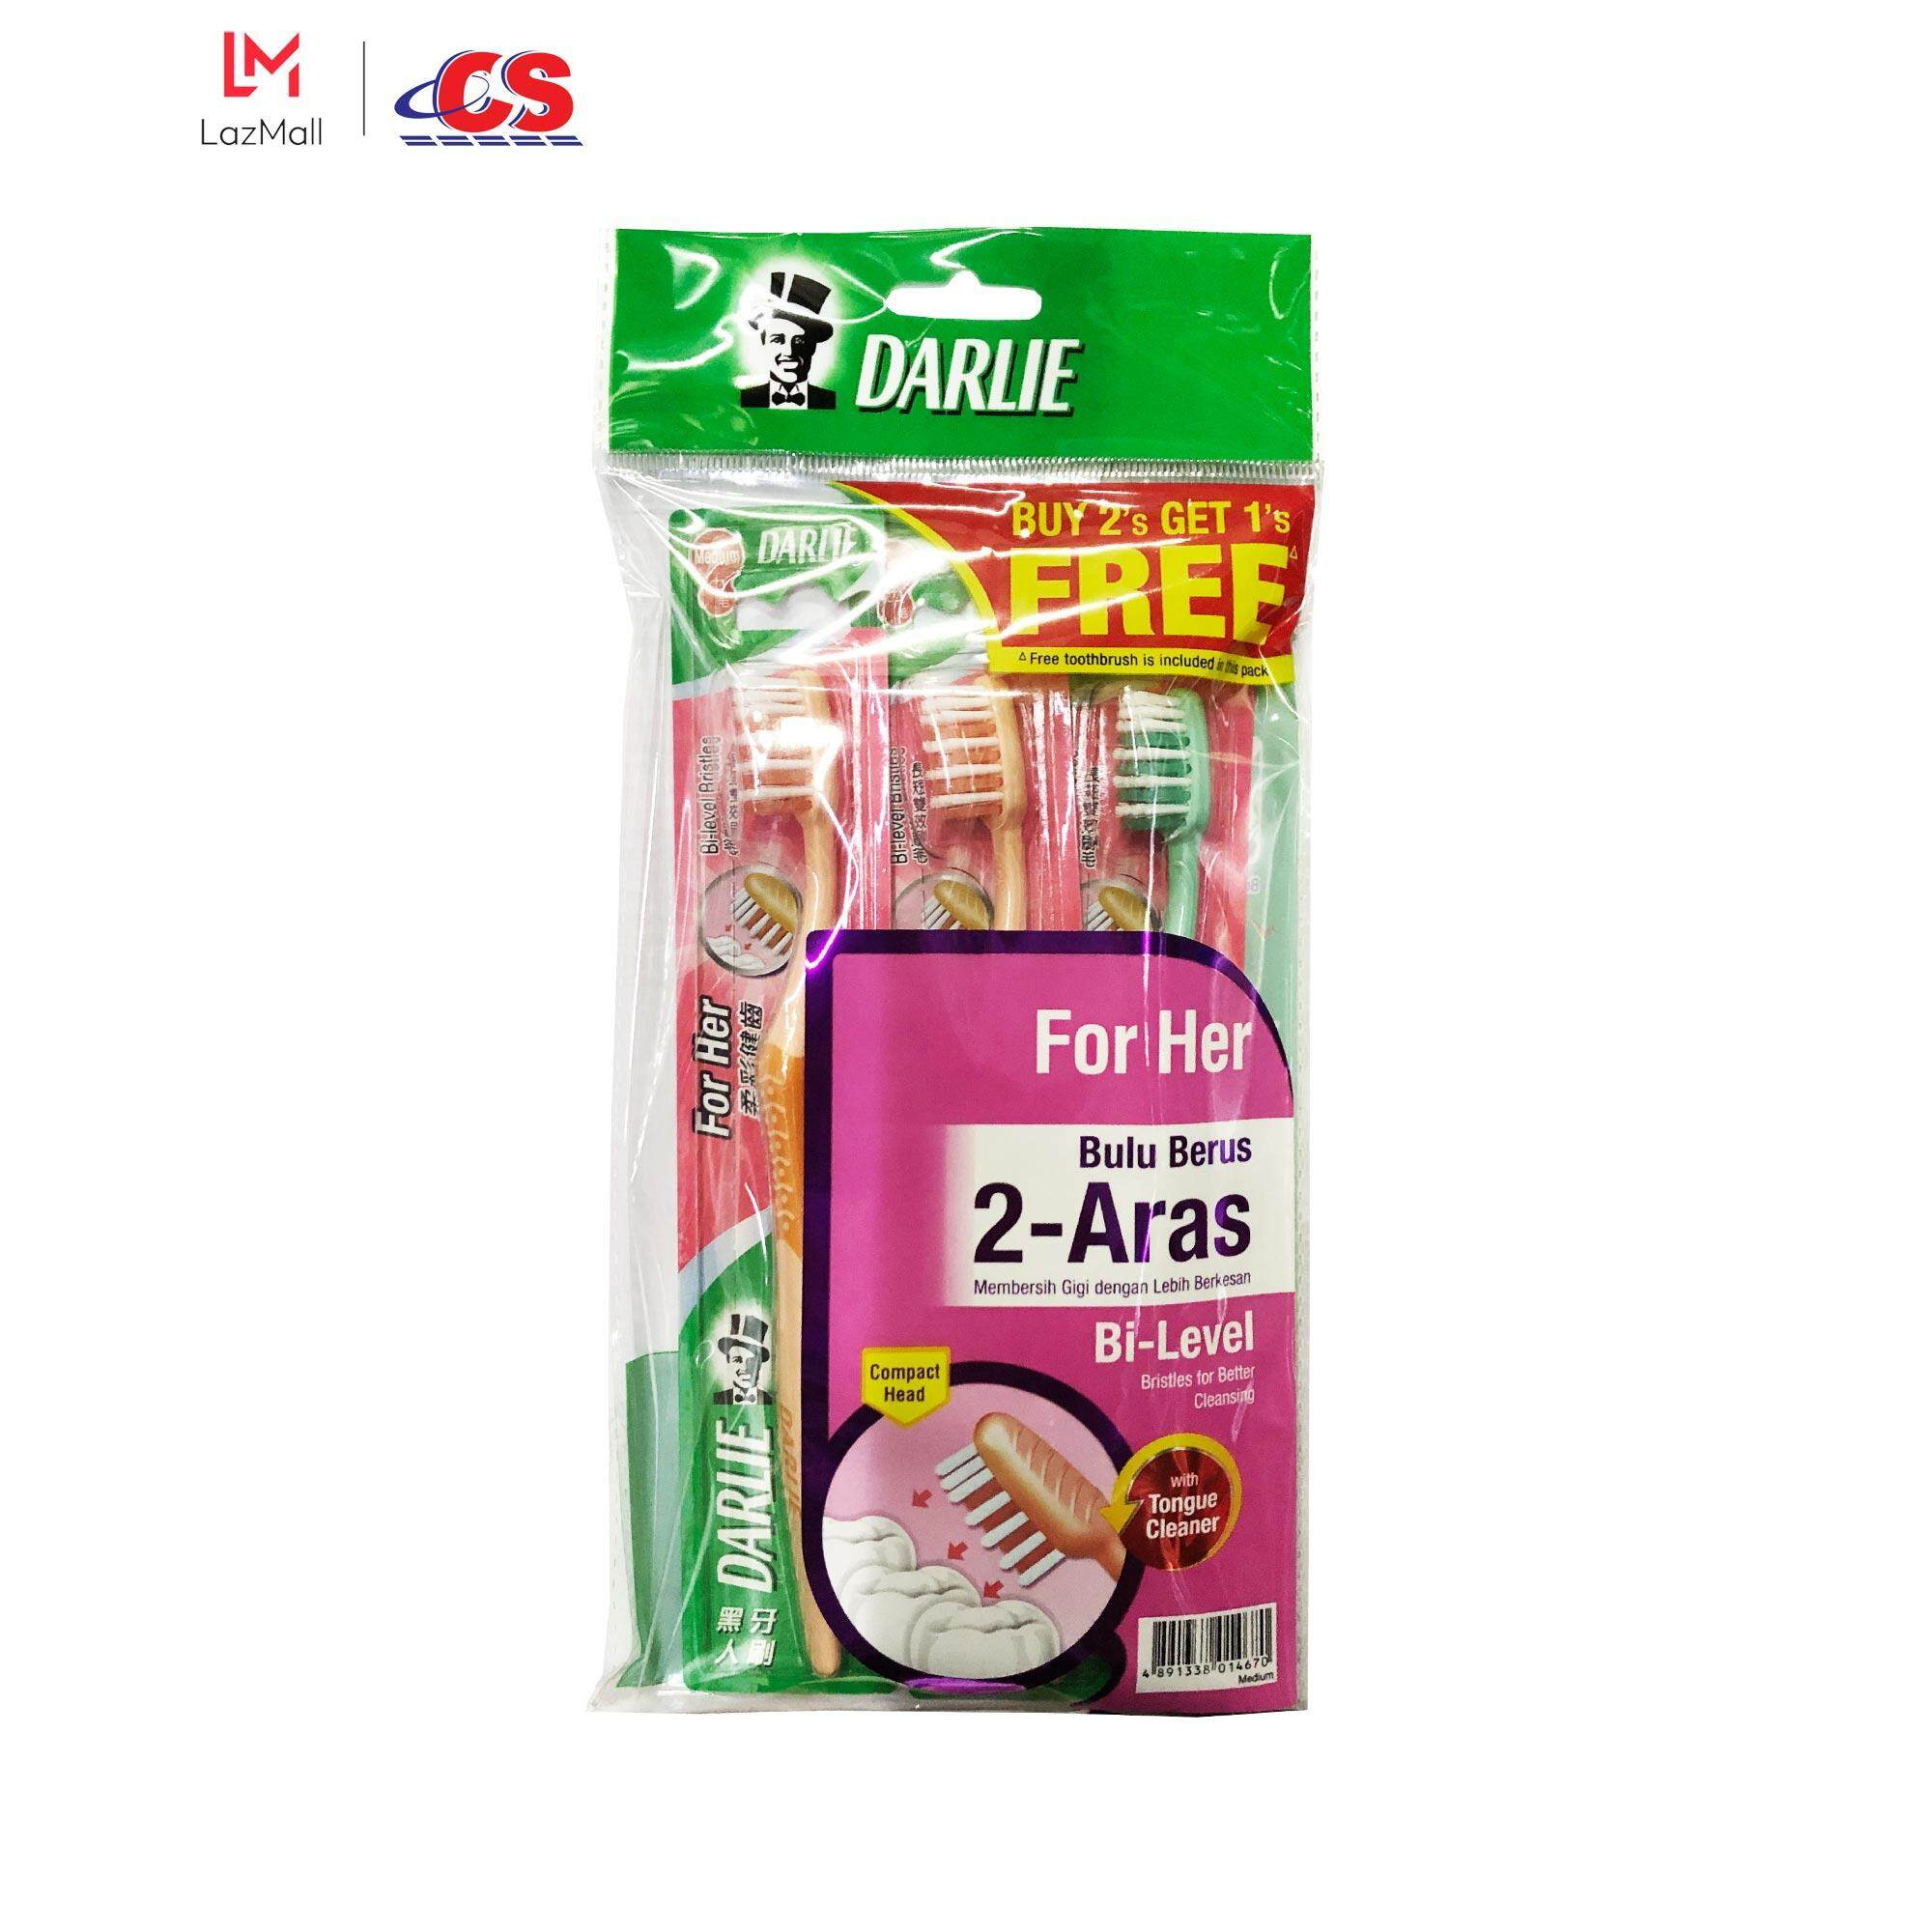 DARLIE Toothbrush For Her Buy 2 Free 1